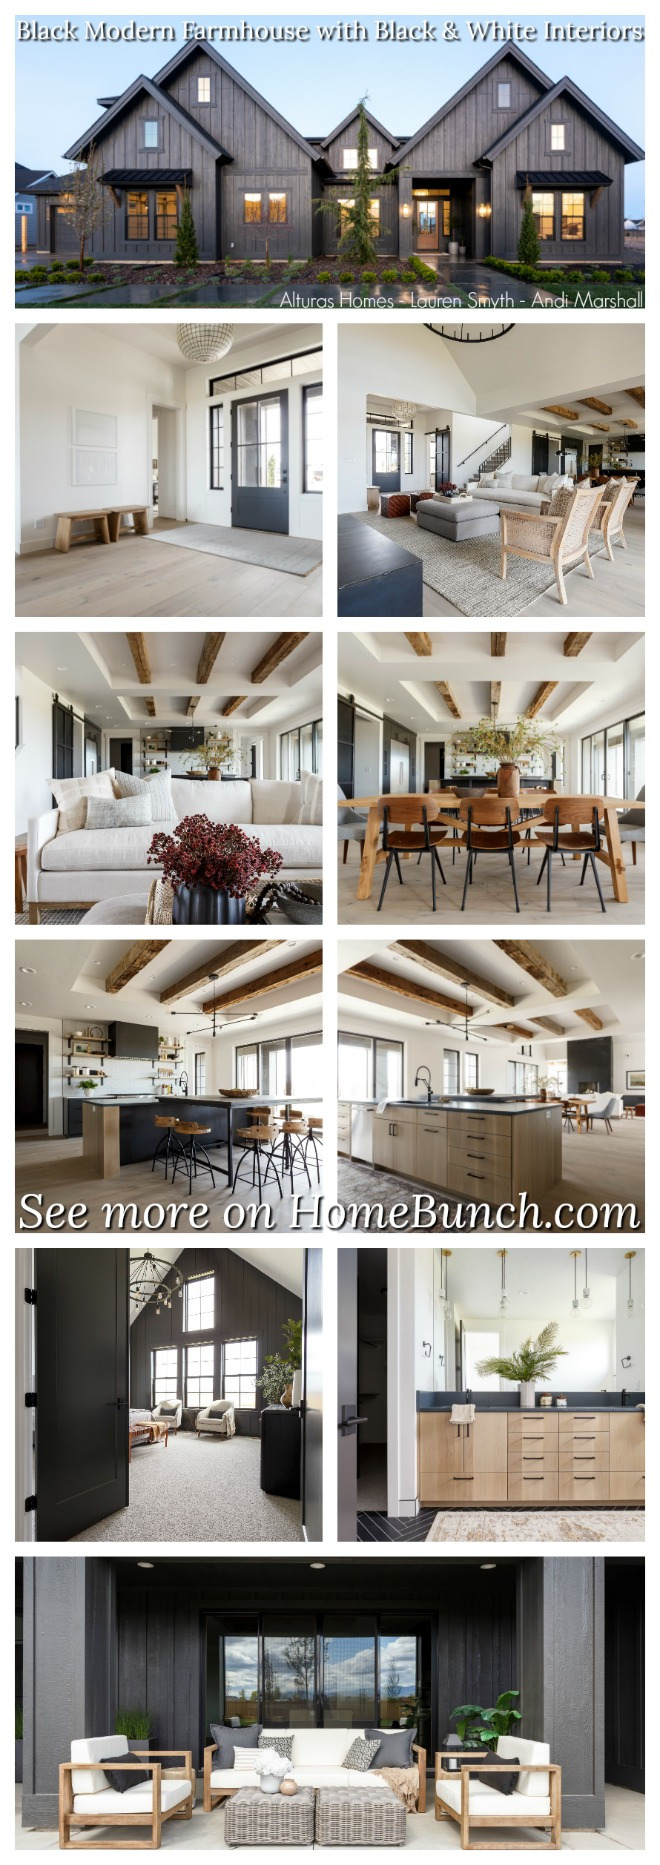 Modern Farmhouse With Wrap Around Porch Home Bunch Interior Design Ideas